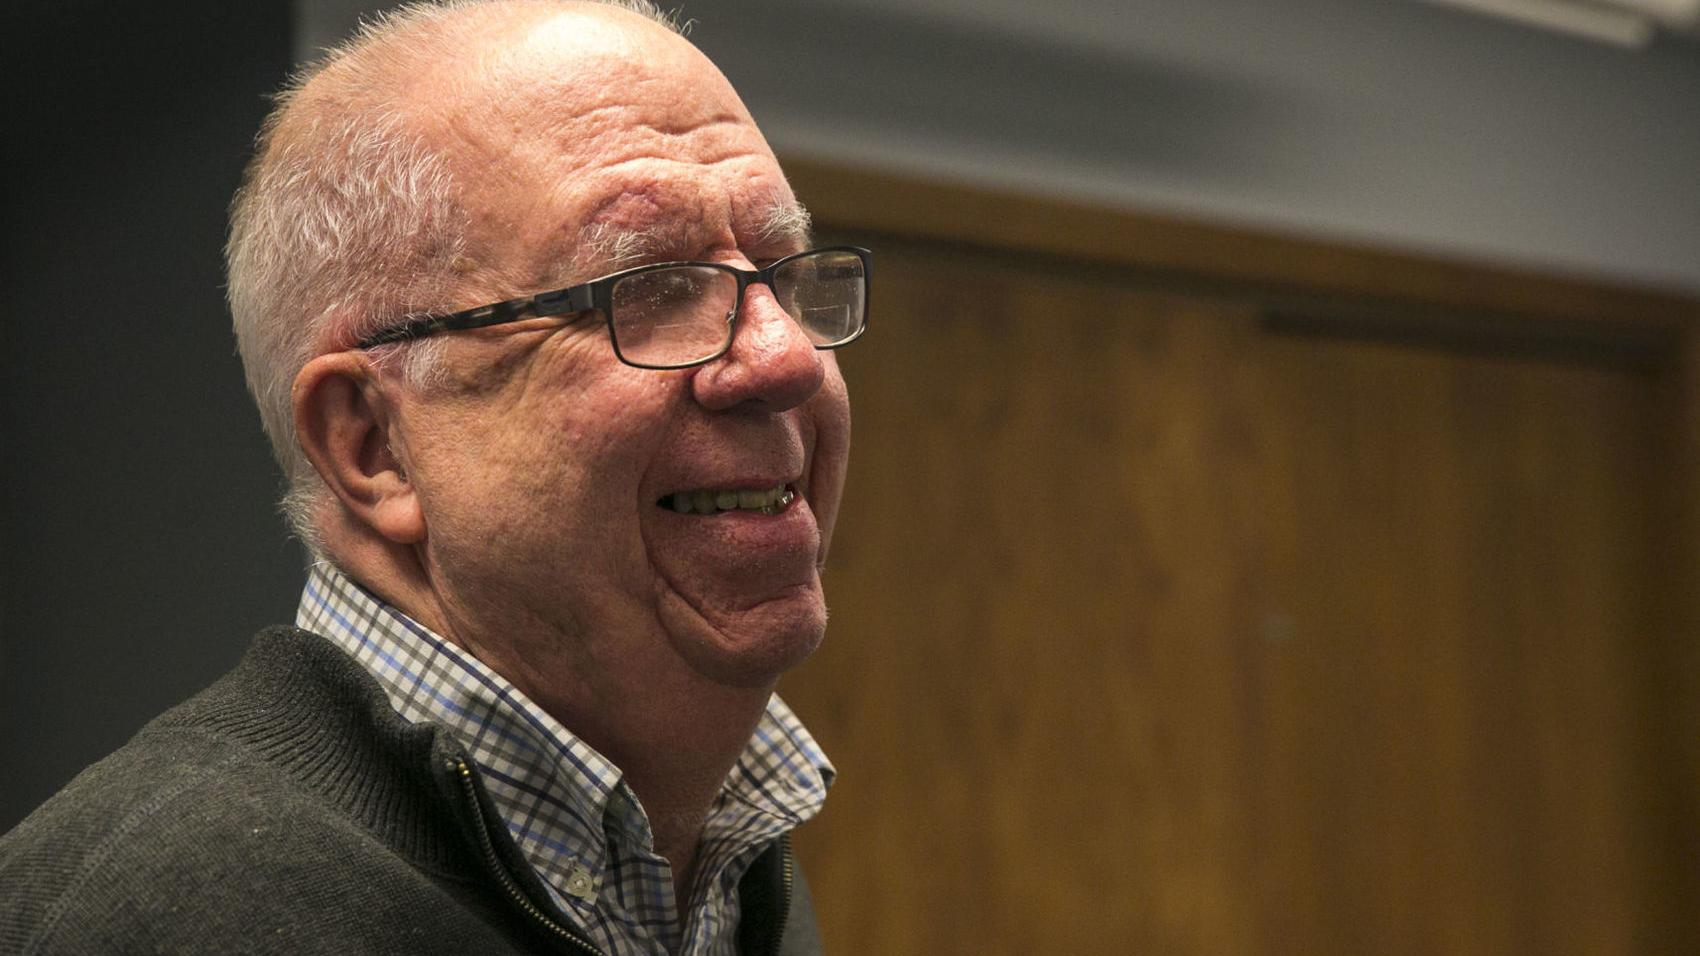 SKIPPER: Colin Powell inspires thoughts about leadership